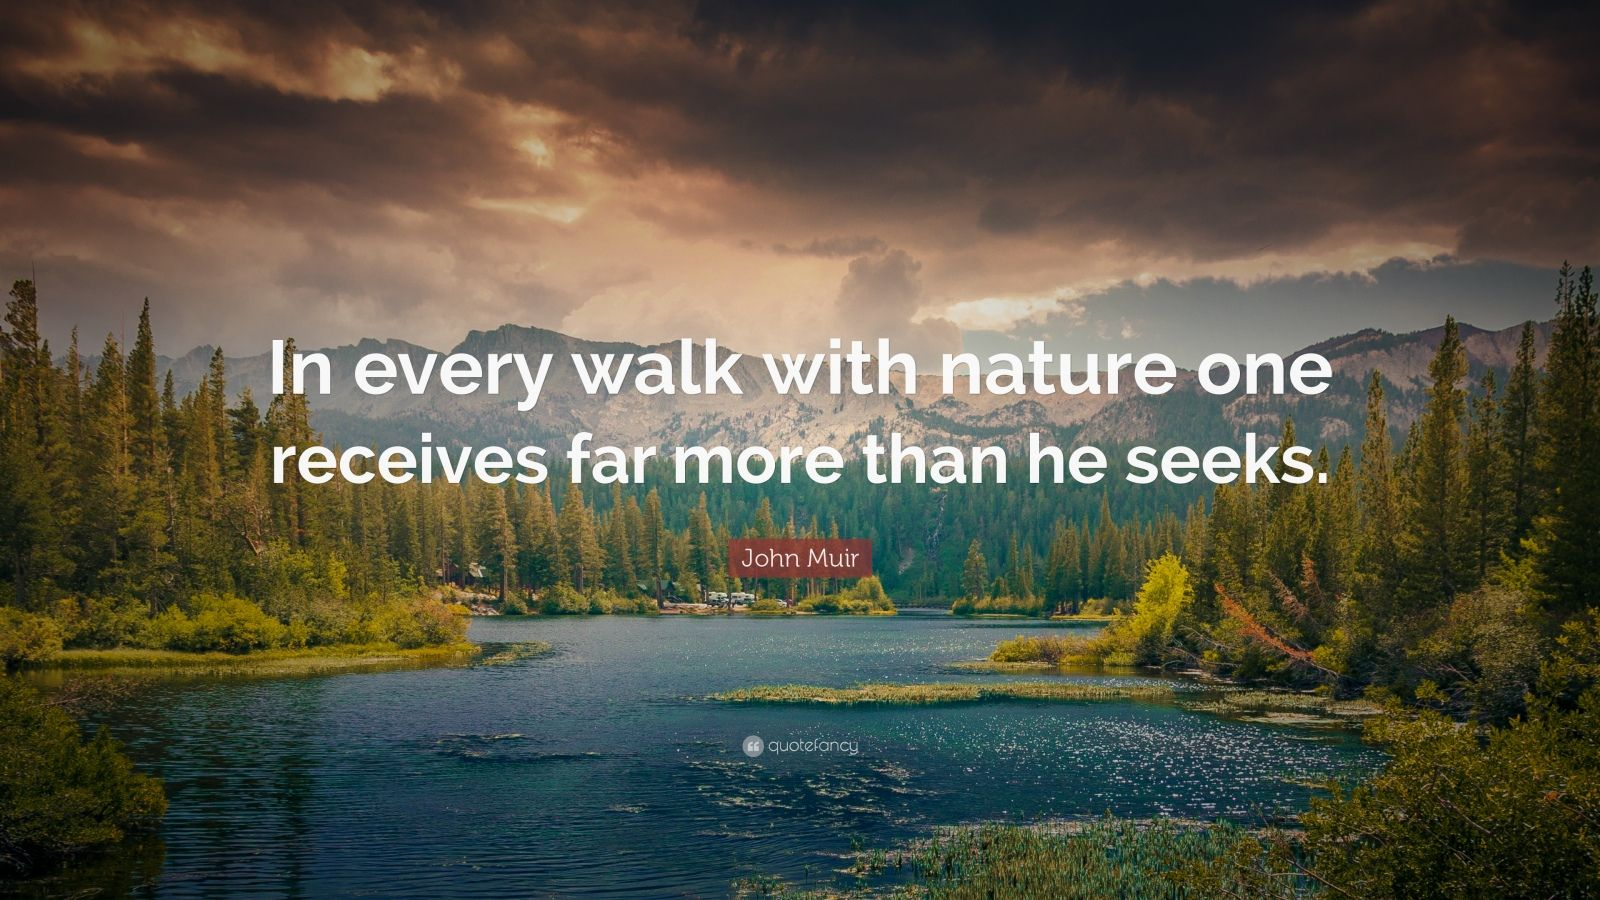 Theodore Roosevelt Wallpaper Quote John Muir Quote In Every Walk With Nature One Receives